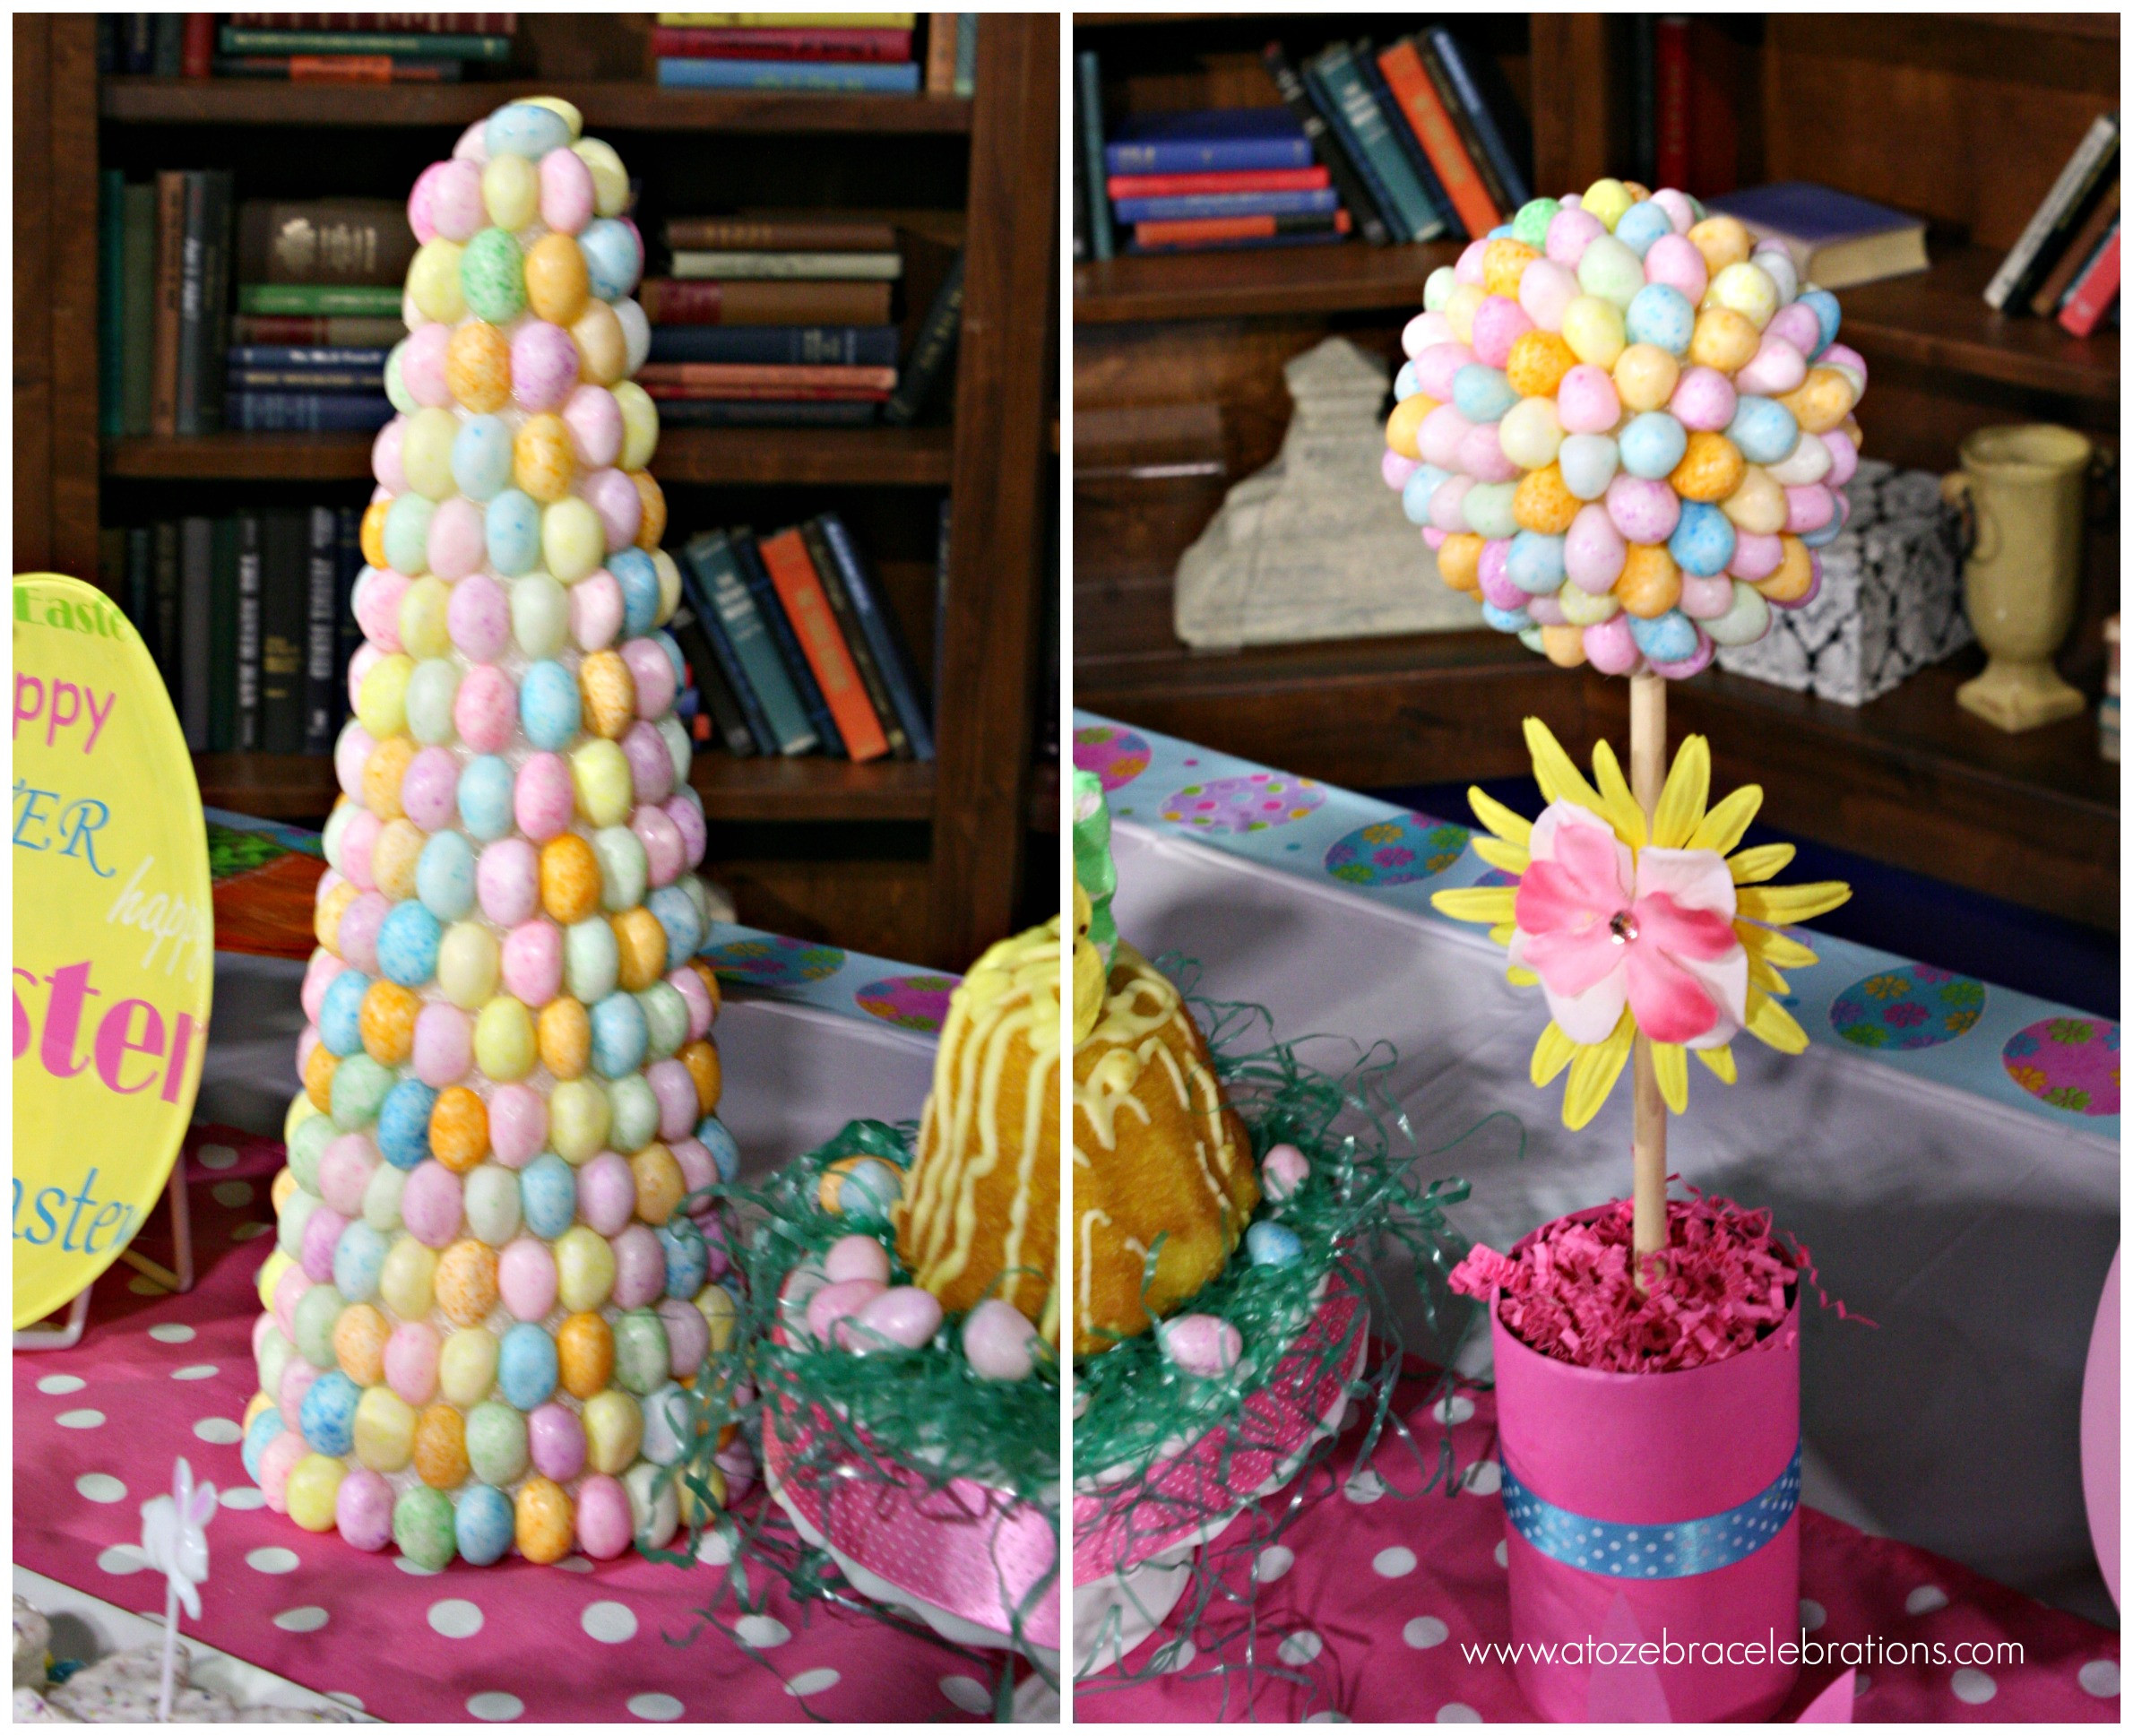 Easter Party Centerpiece Ideas  Easter Party Ideas For Less – A to Zebra Celebrations